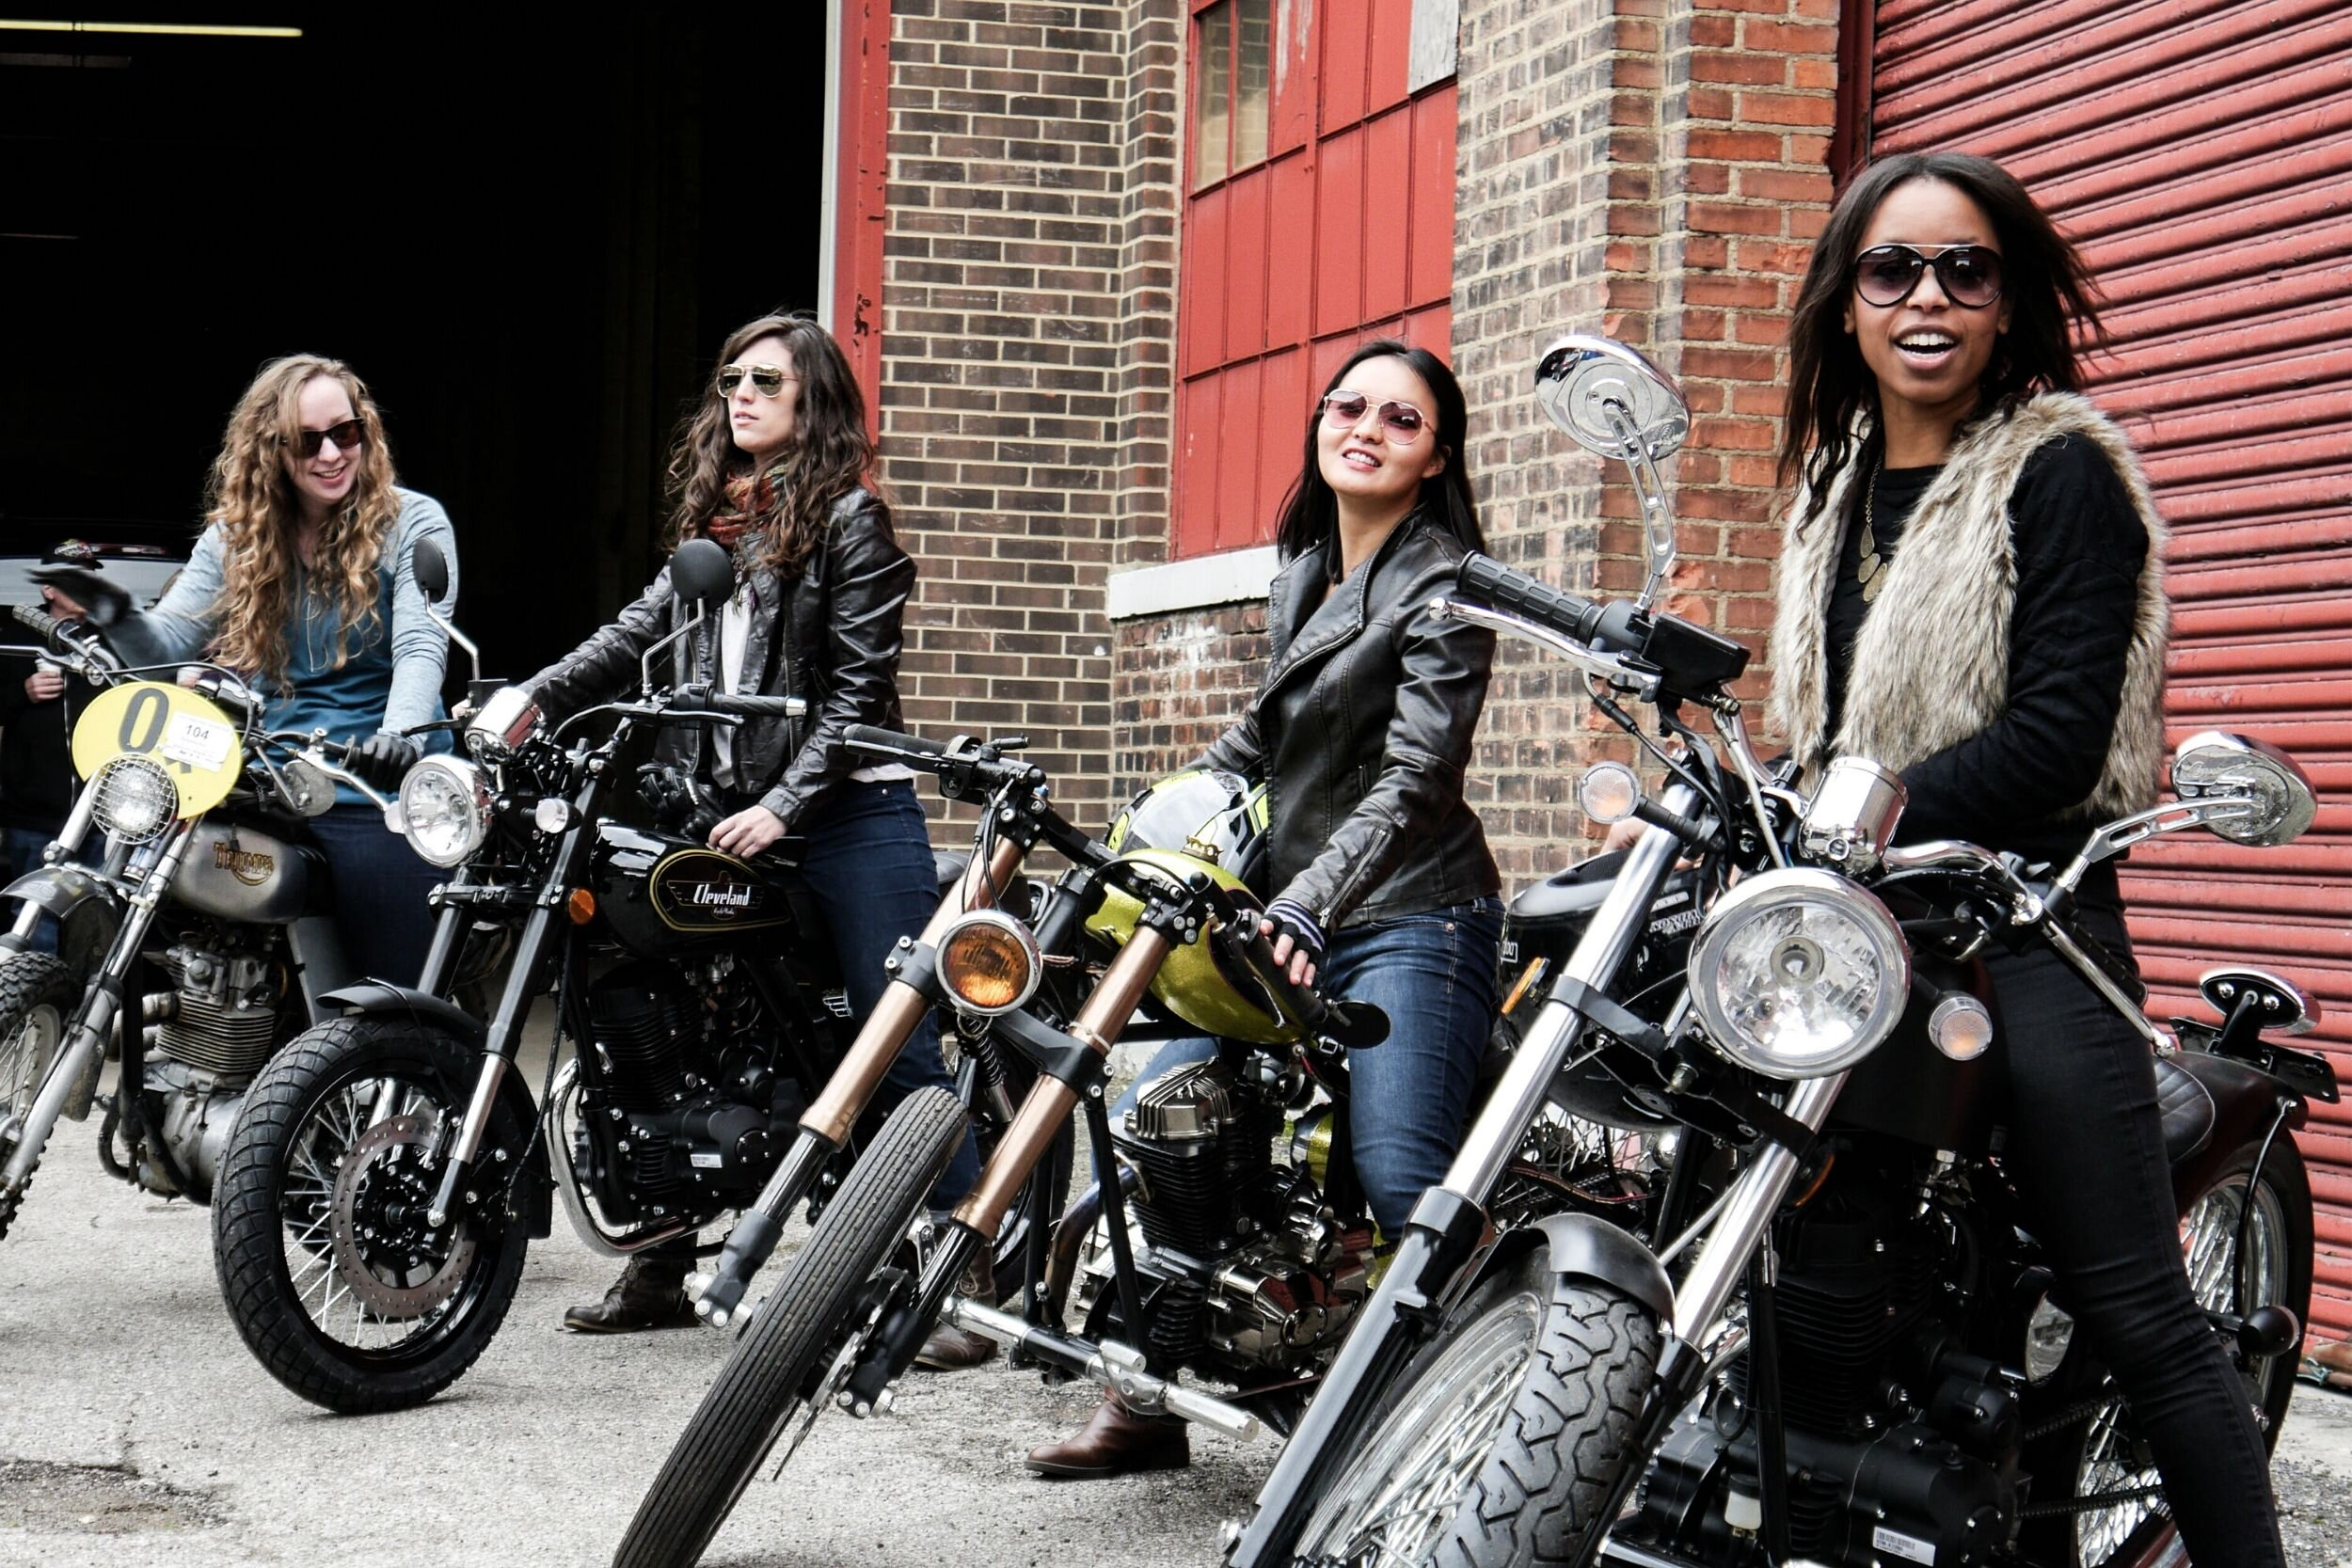 Cleveland Motorcycles Built For The People